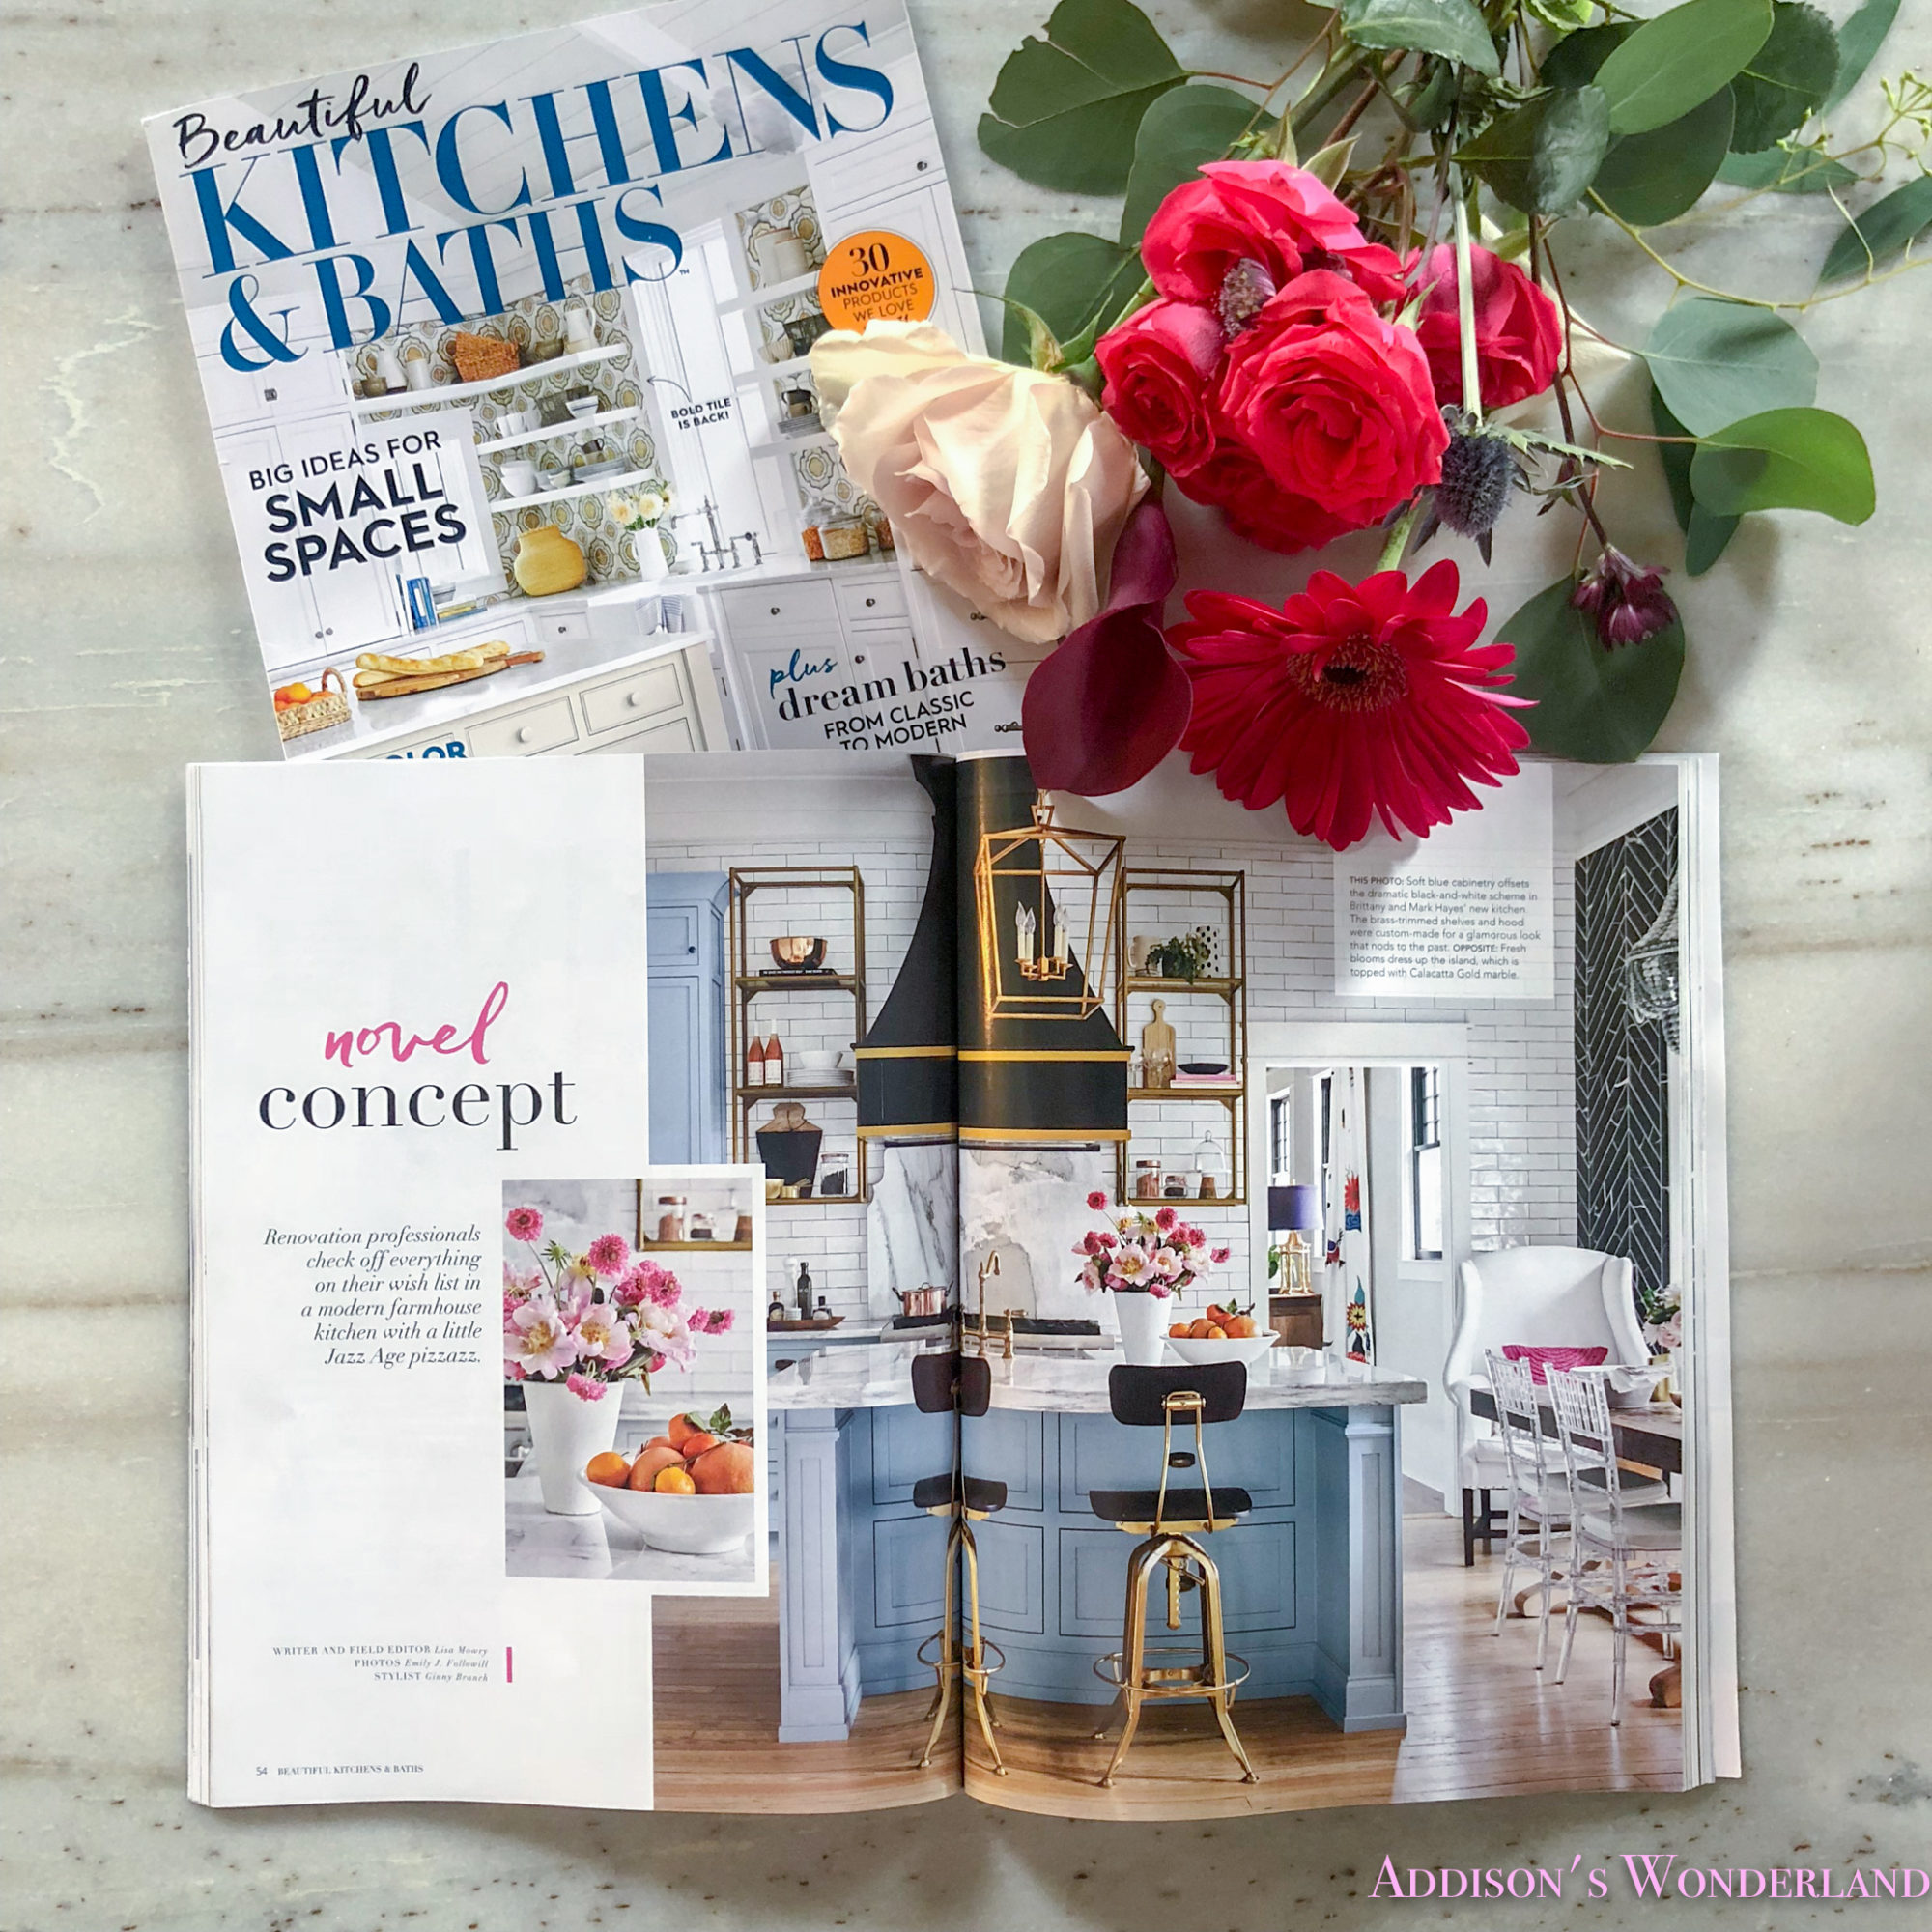 Our Kitchen Feature in Beautiful Kitchens & Baths Magazine…